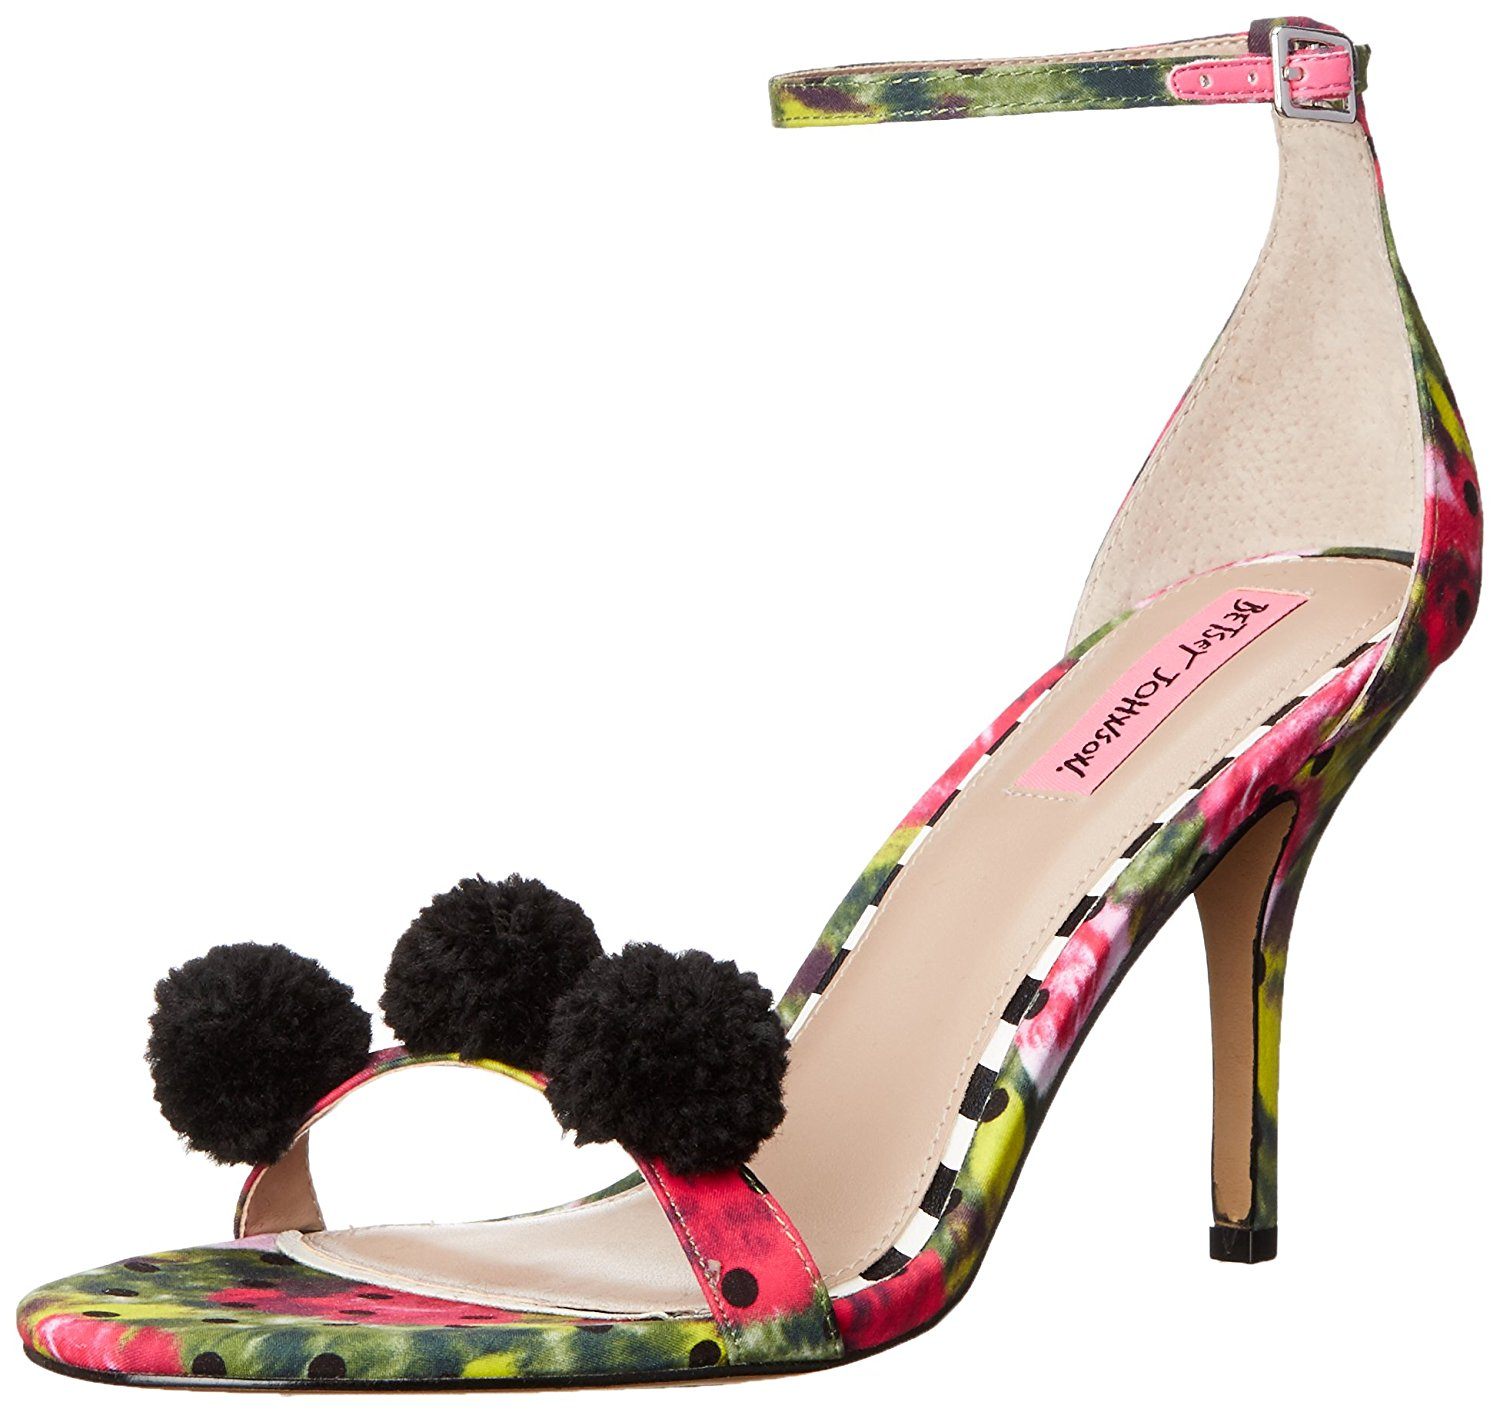 Betsey Johnson Womens Lylly Open Toe Ankle Strap Dorsay Green/Multi Size 9.5